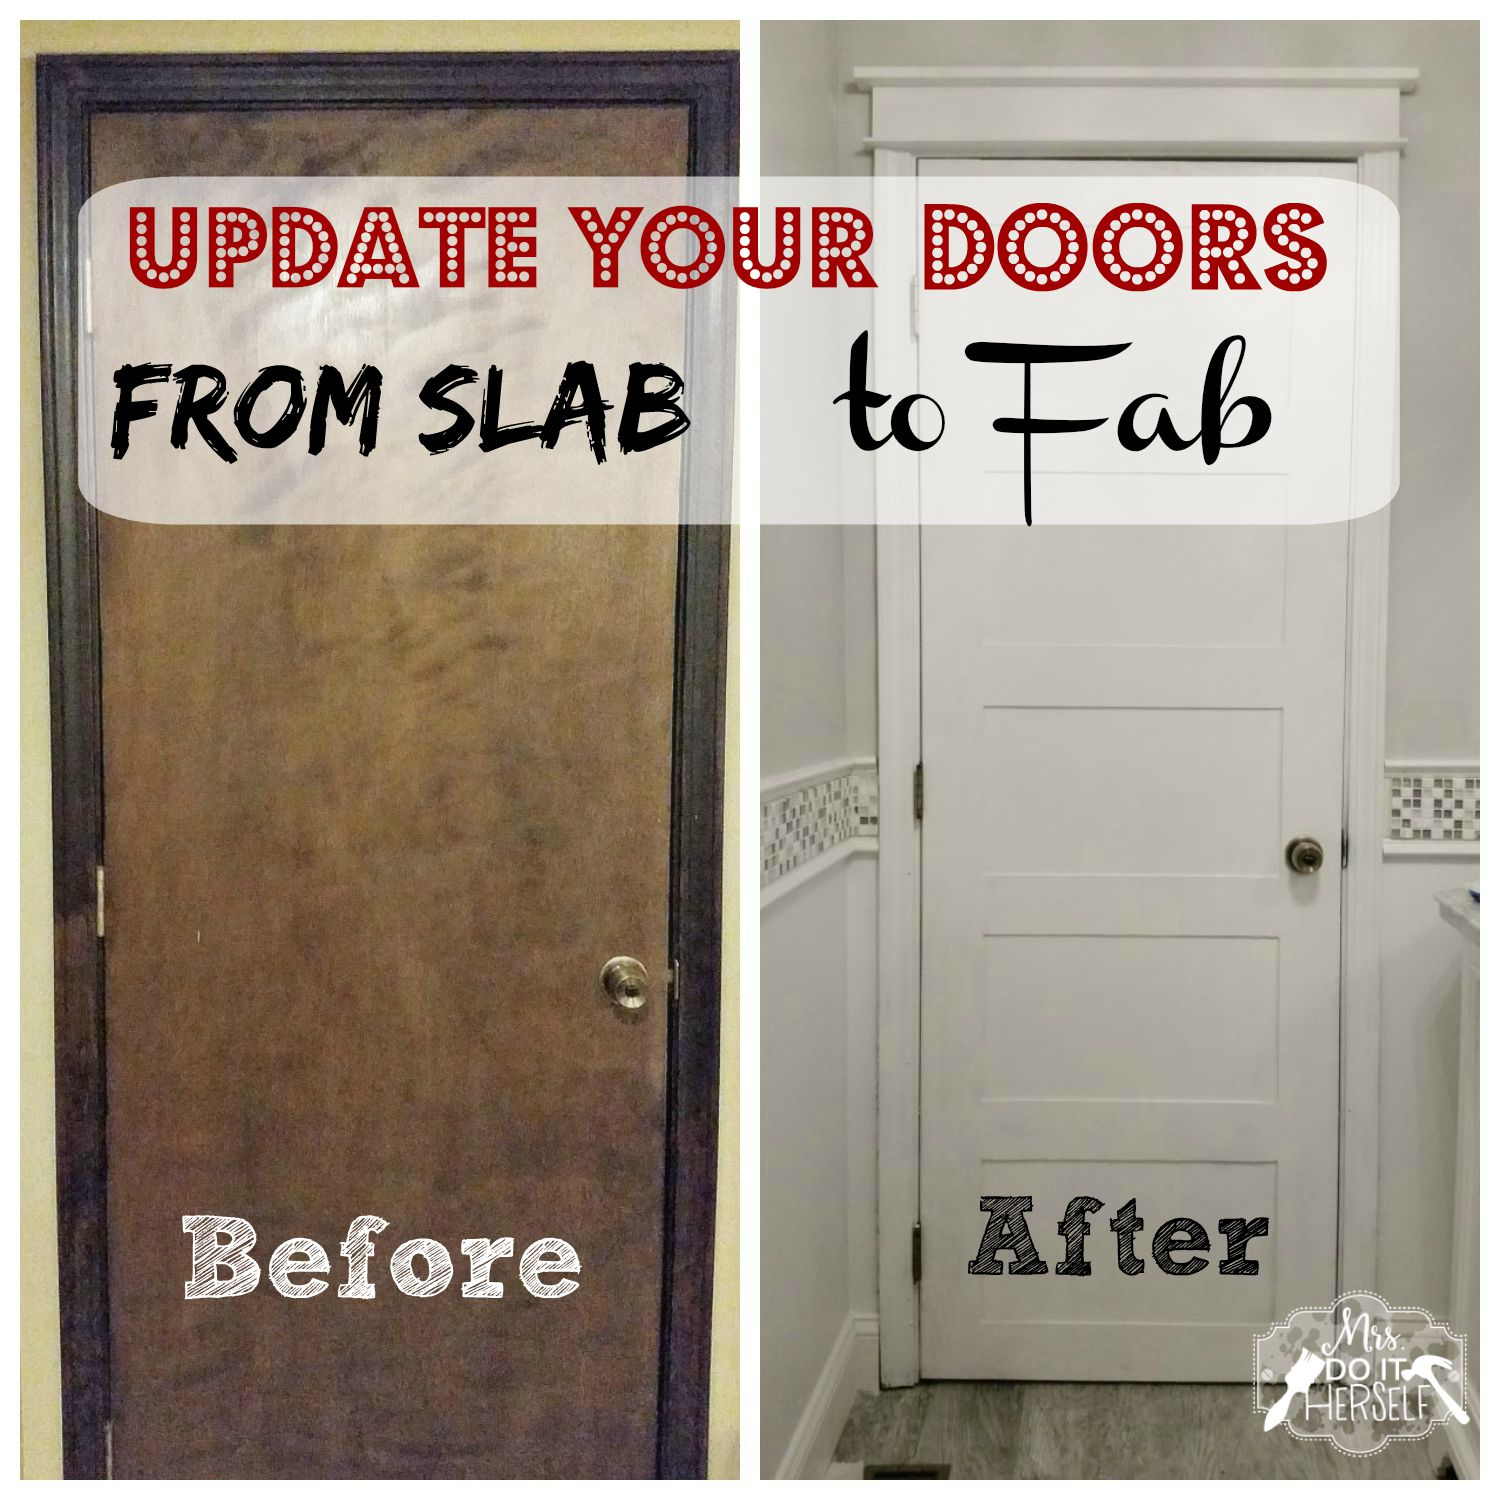 From Slab to Fab u2013 DIY 5 Panel Door & From Slab to Fab - DIY 5 Panel Door - Mrs. Do It Herself